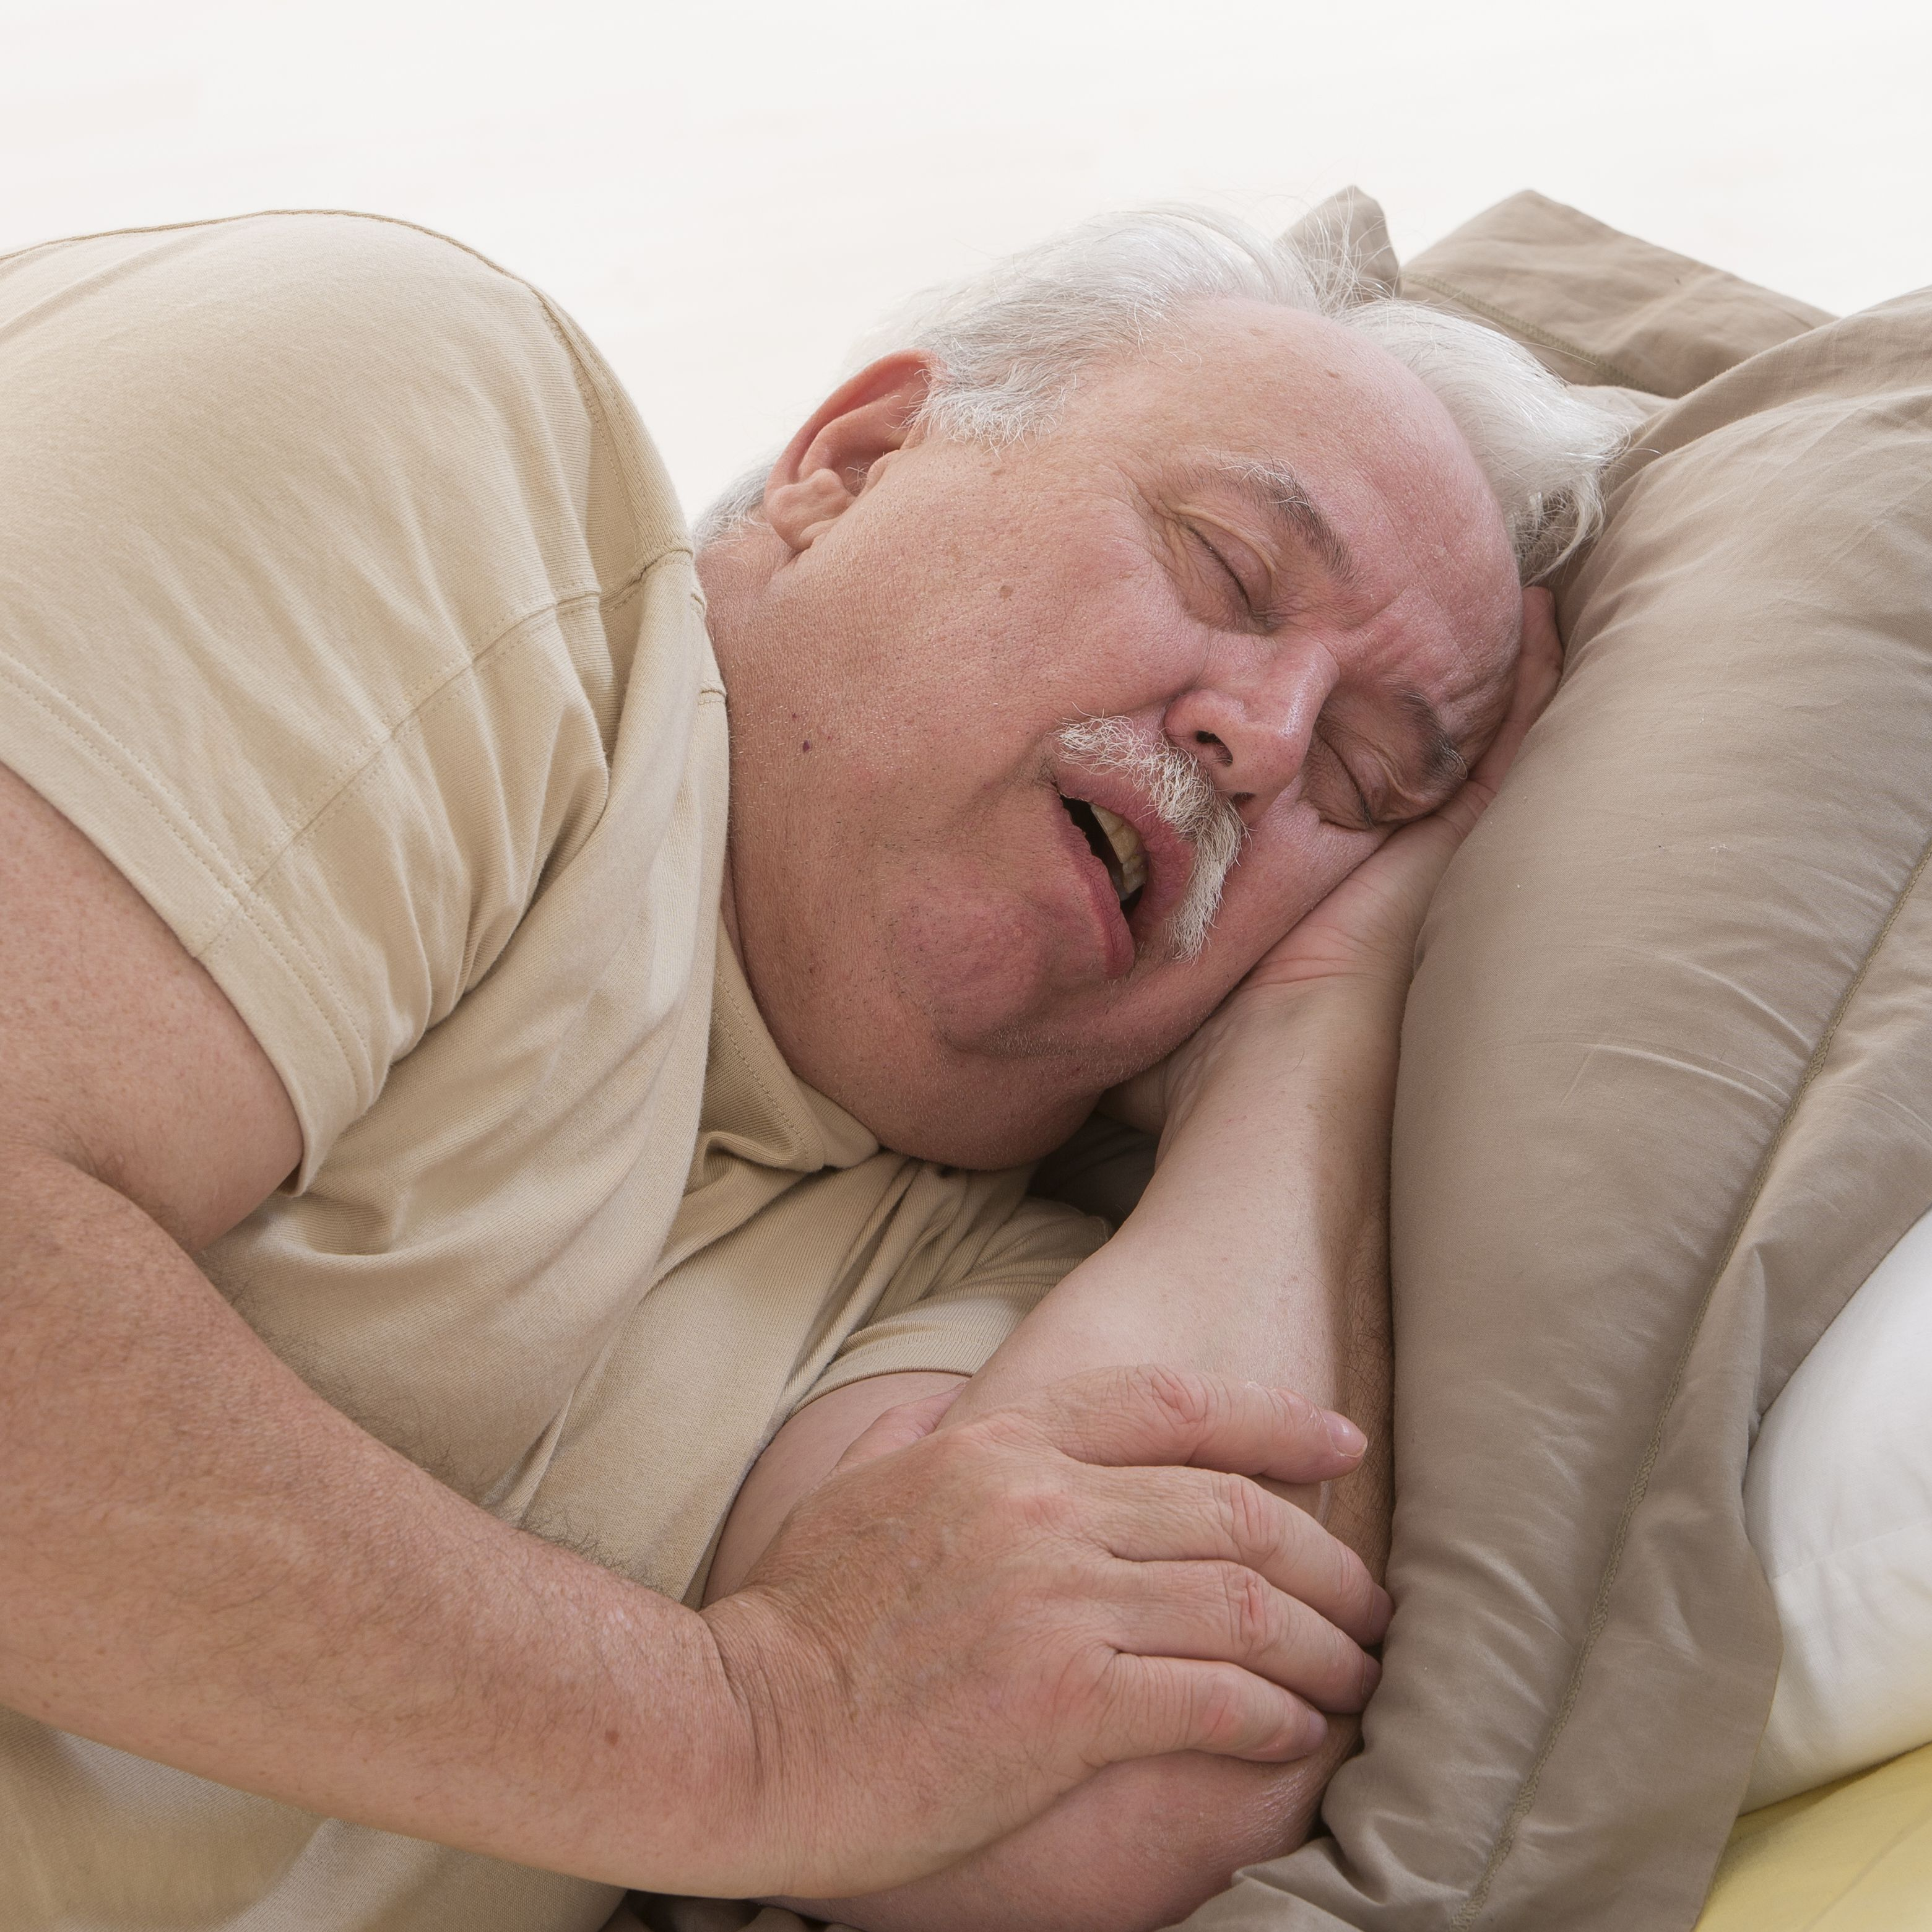 Surprising Signs and Symptoms of Sleep Apnea